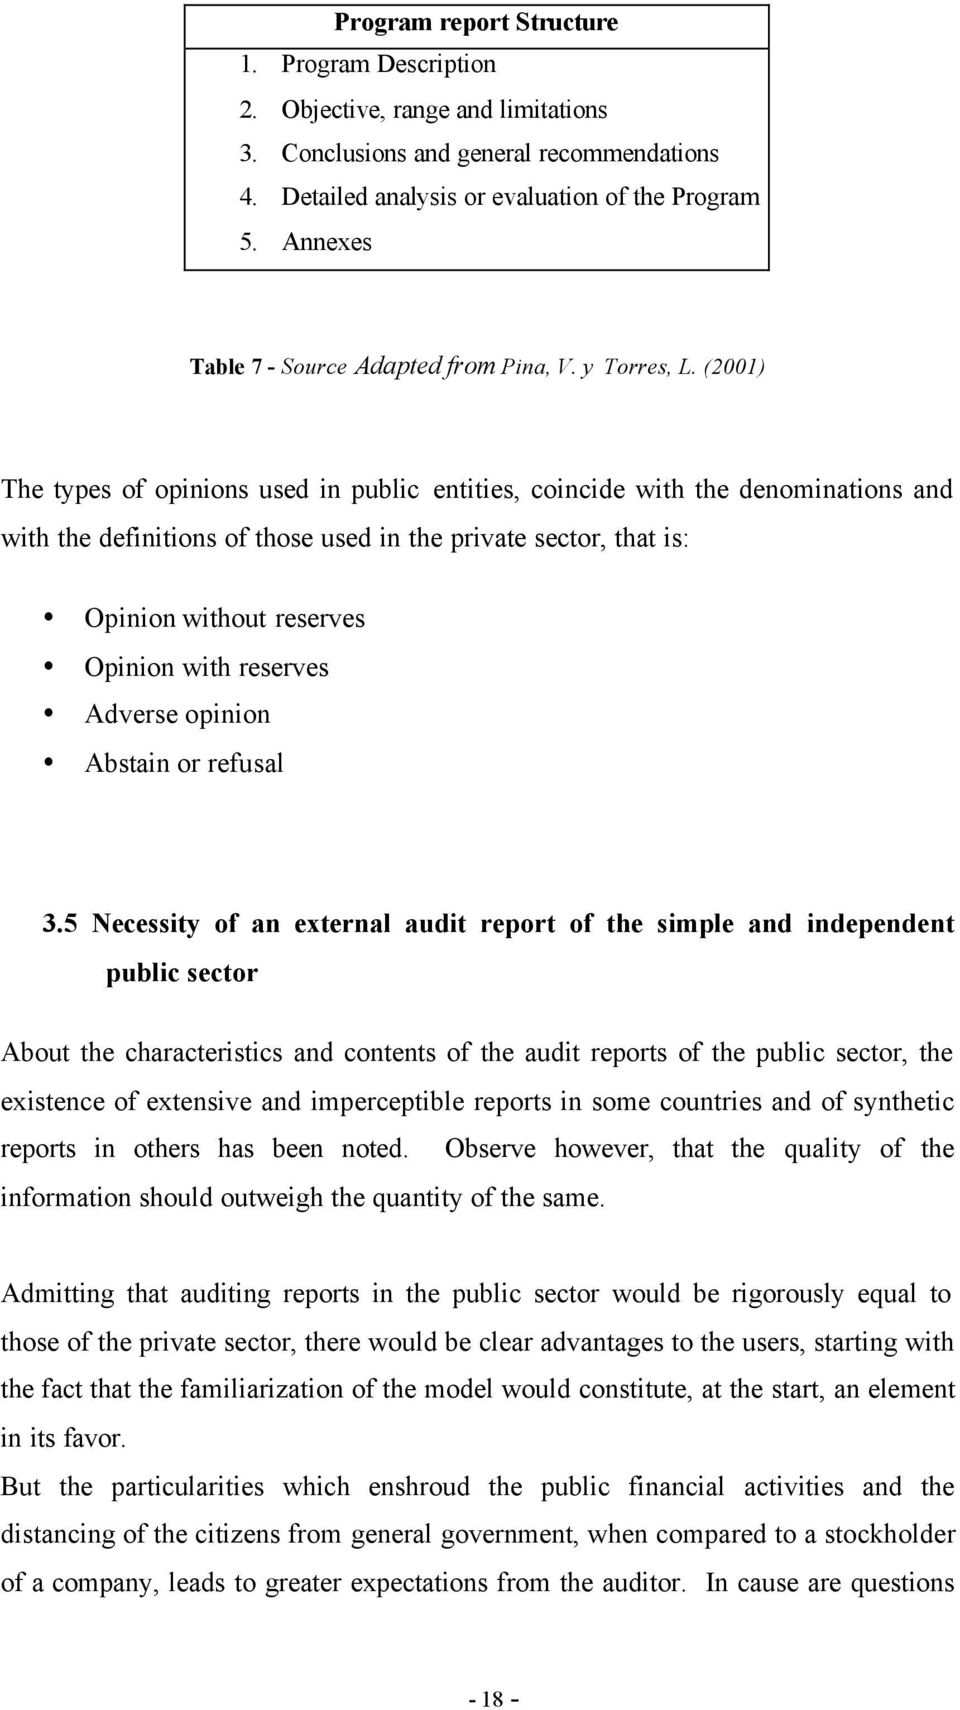 (2001) The types of opinions used in public entities, coincide with the denominations and with the definitions of those used in the private sector, that is: Opinion without reserves Opinion with